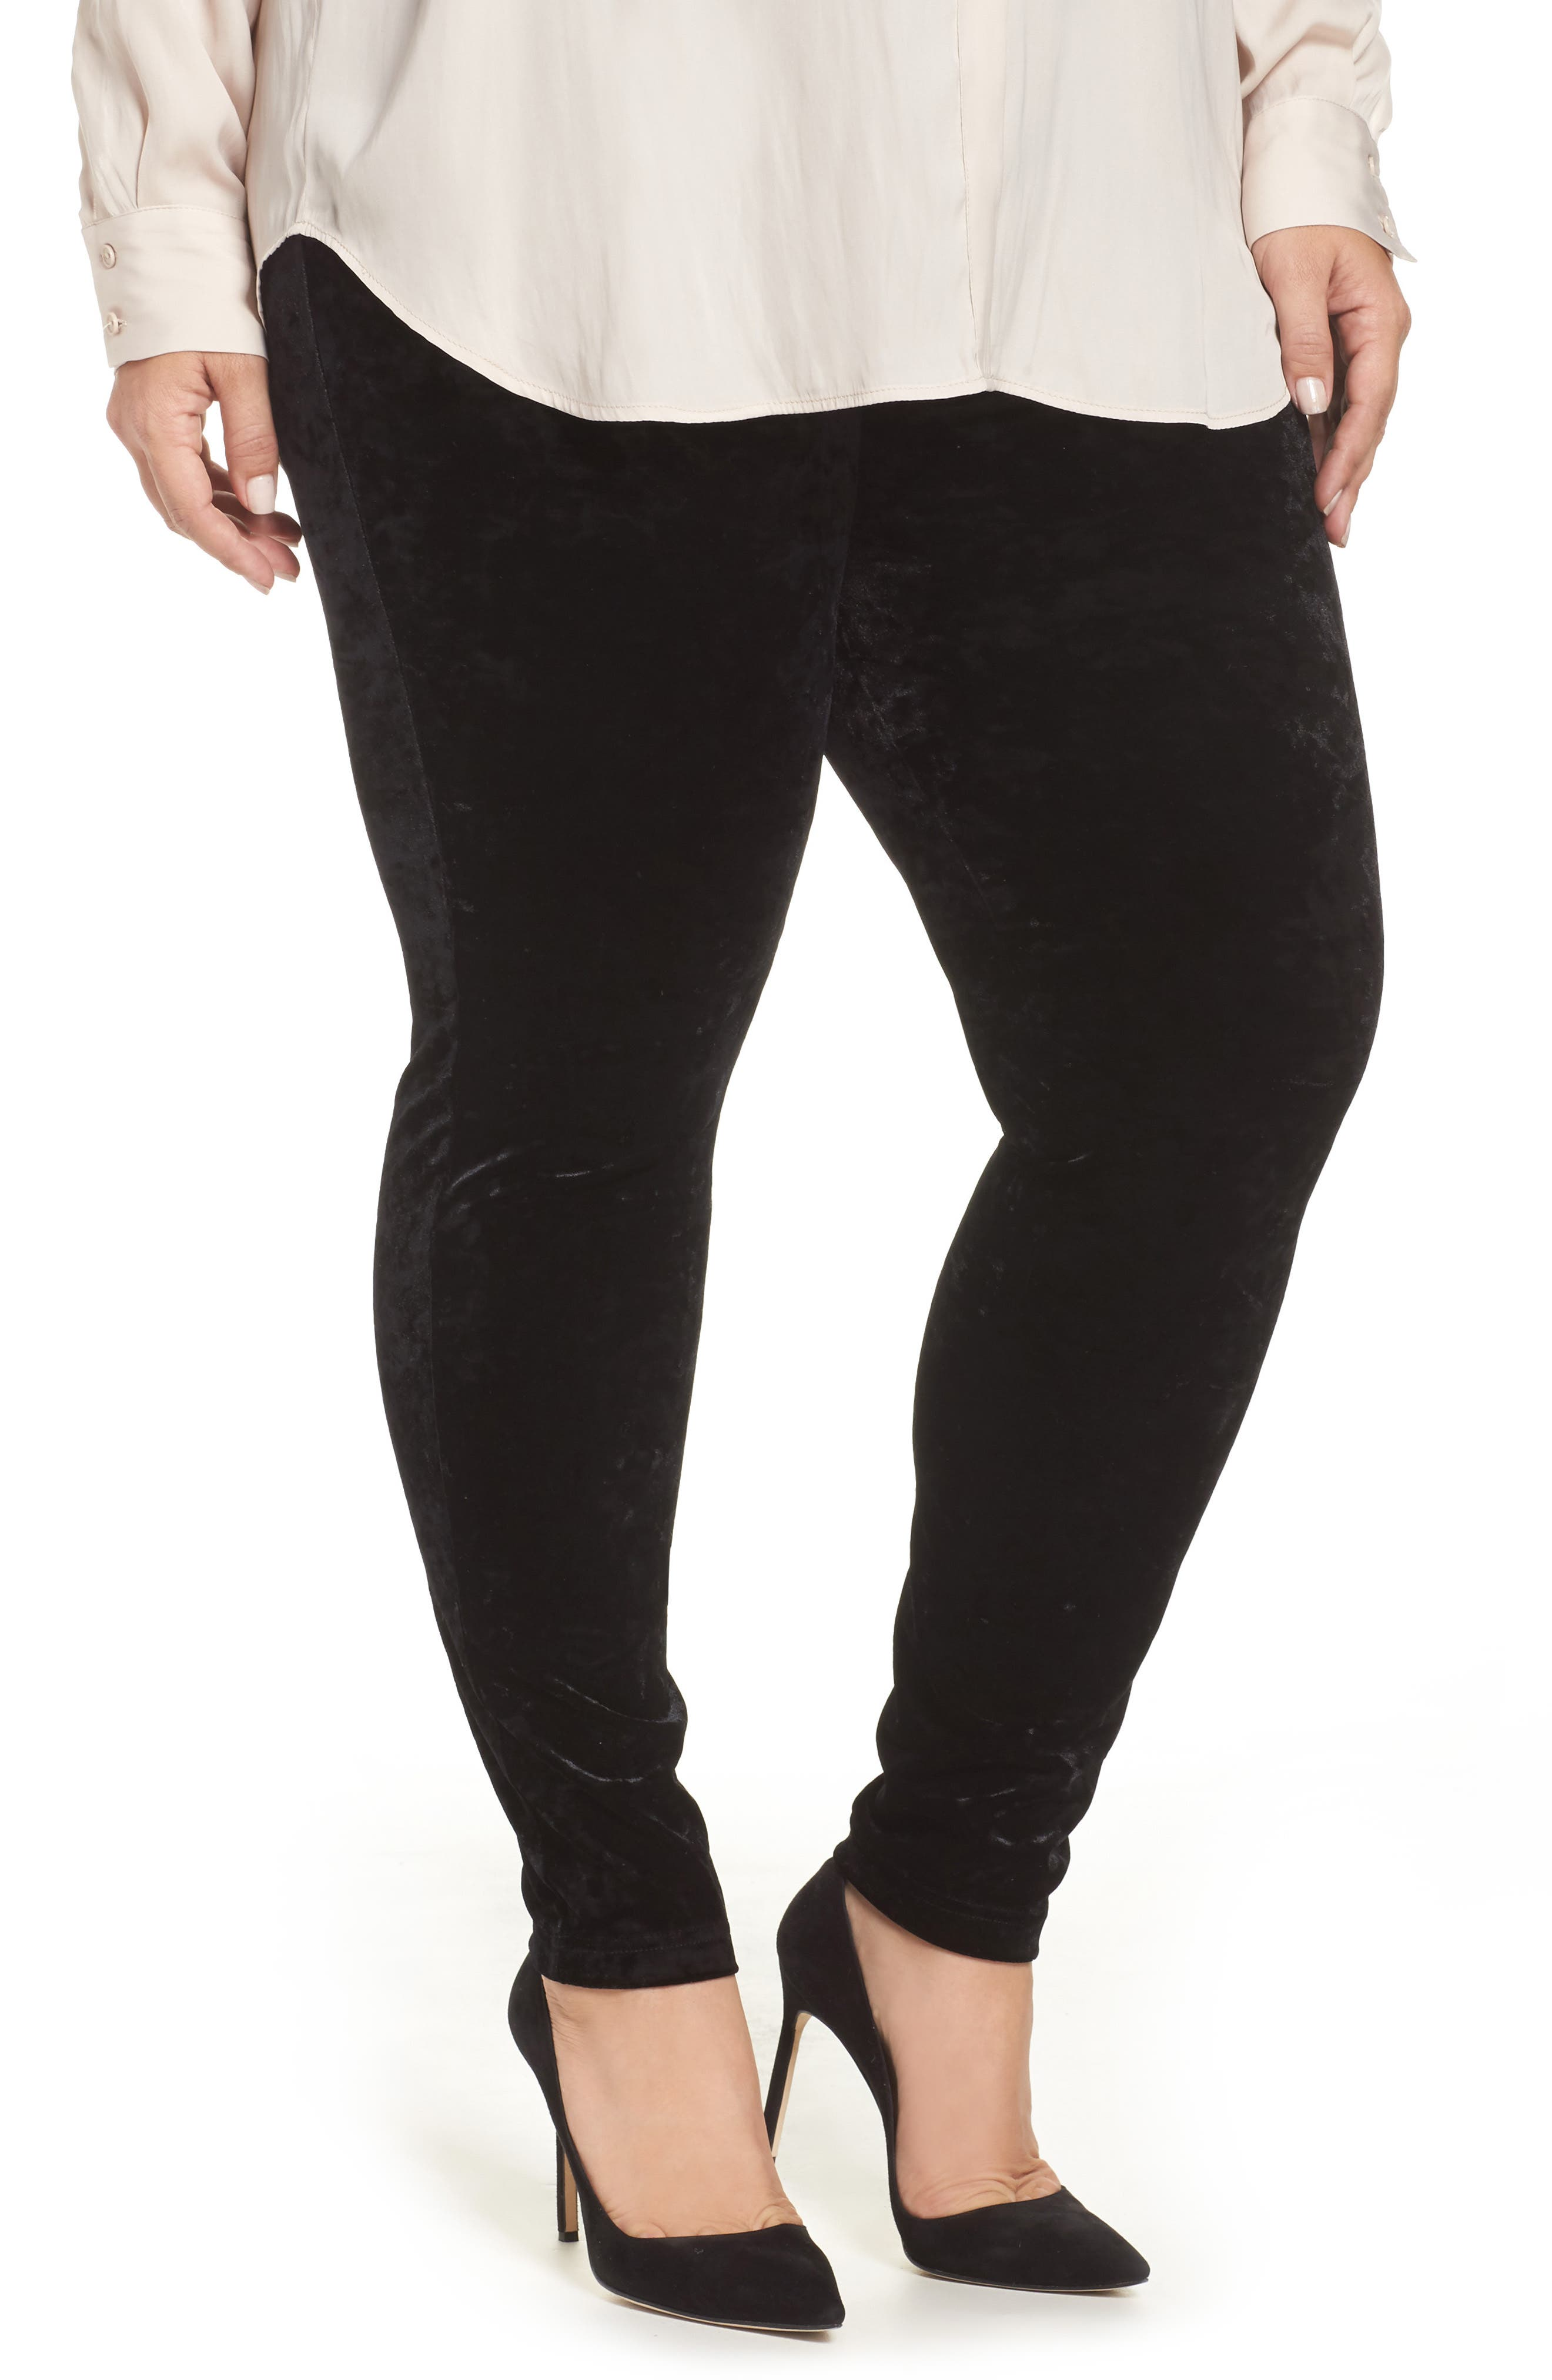 Alternate Image 1 Selected - Vince Camuto Crushed Velvet Knit Leggings (Plus Size)